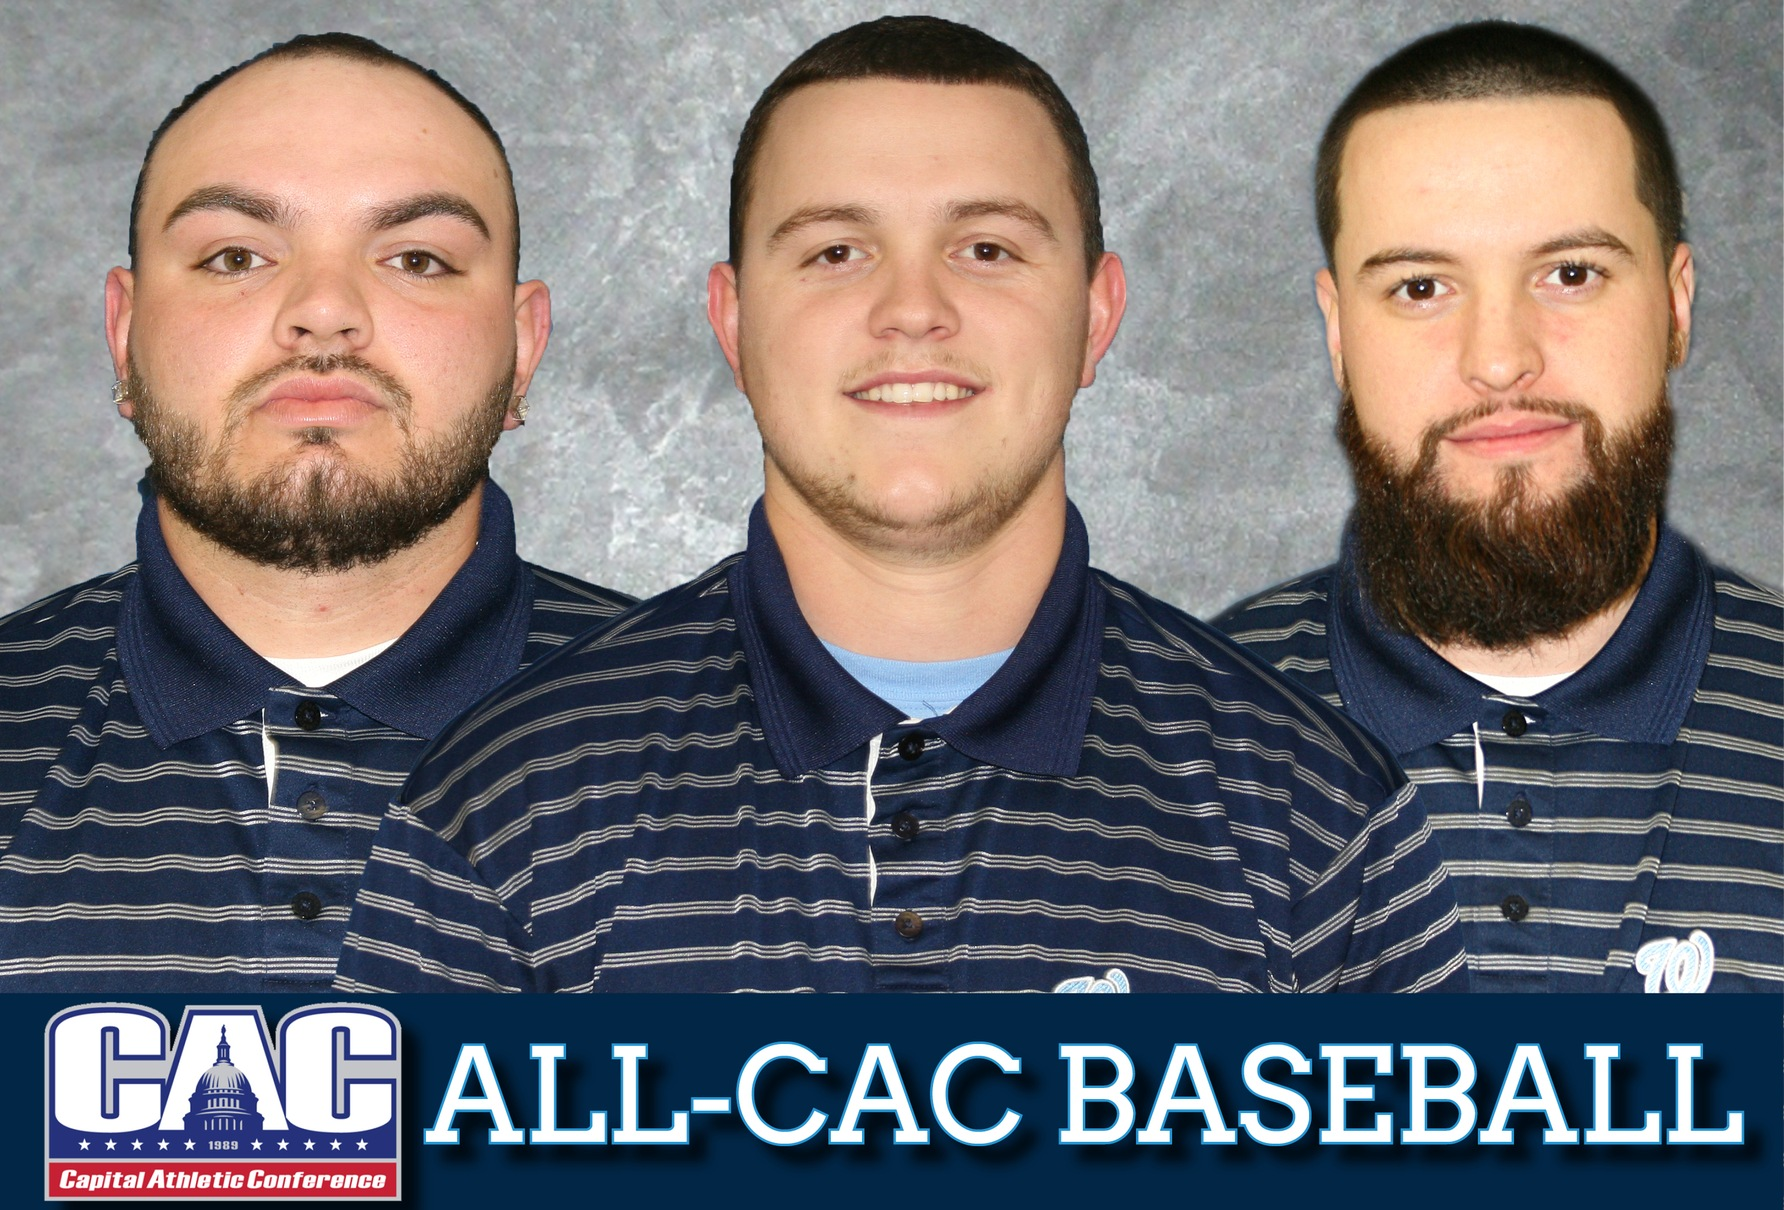 Mears named CAC Co-Player of the Year, Three Wolverines land on All-CAC teams